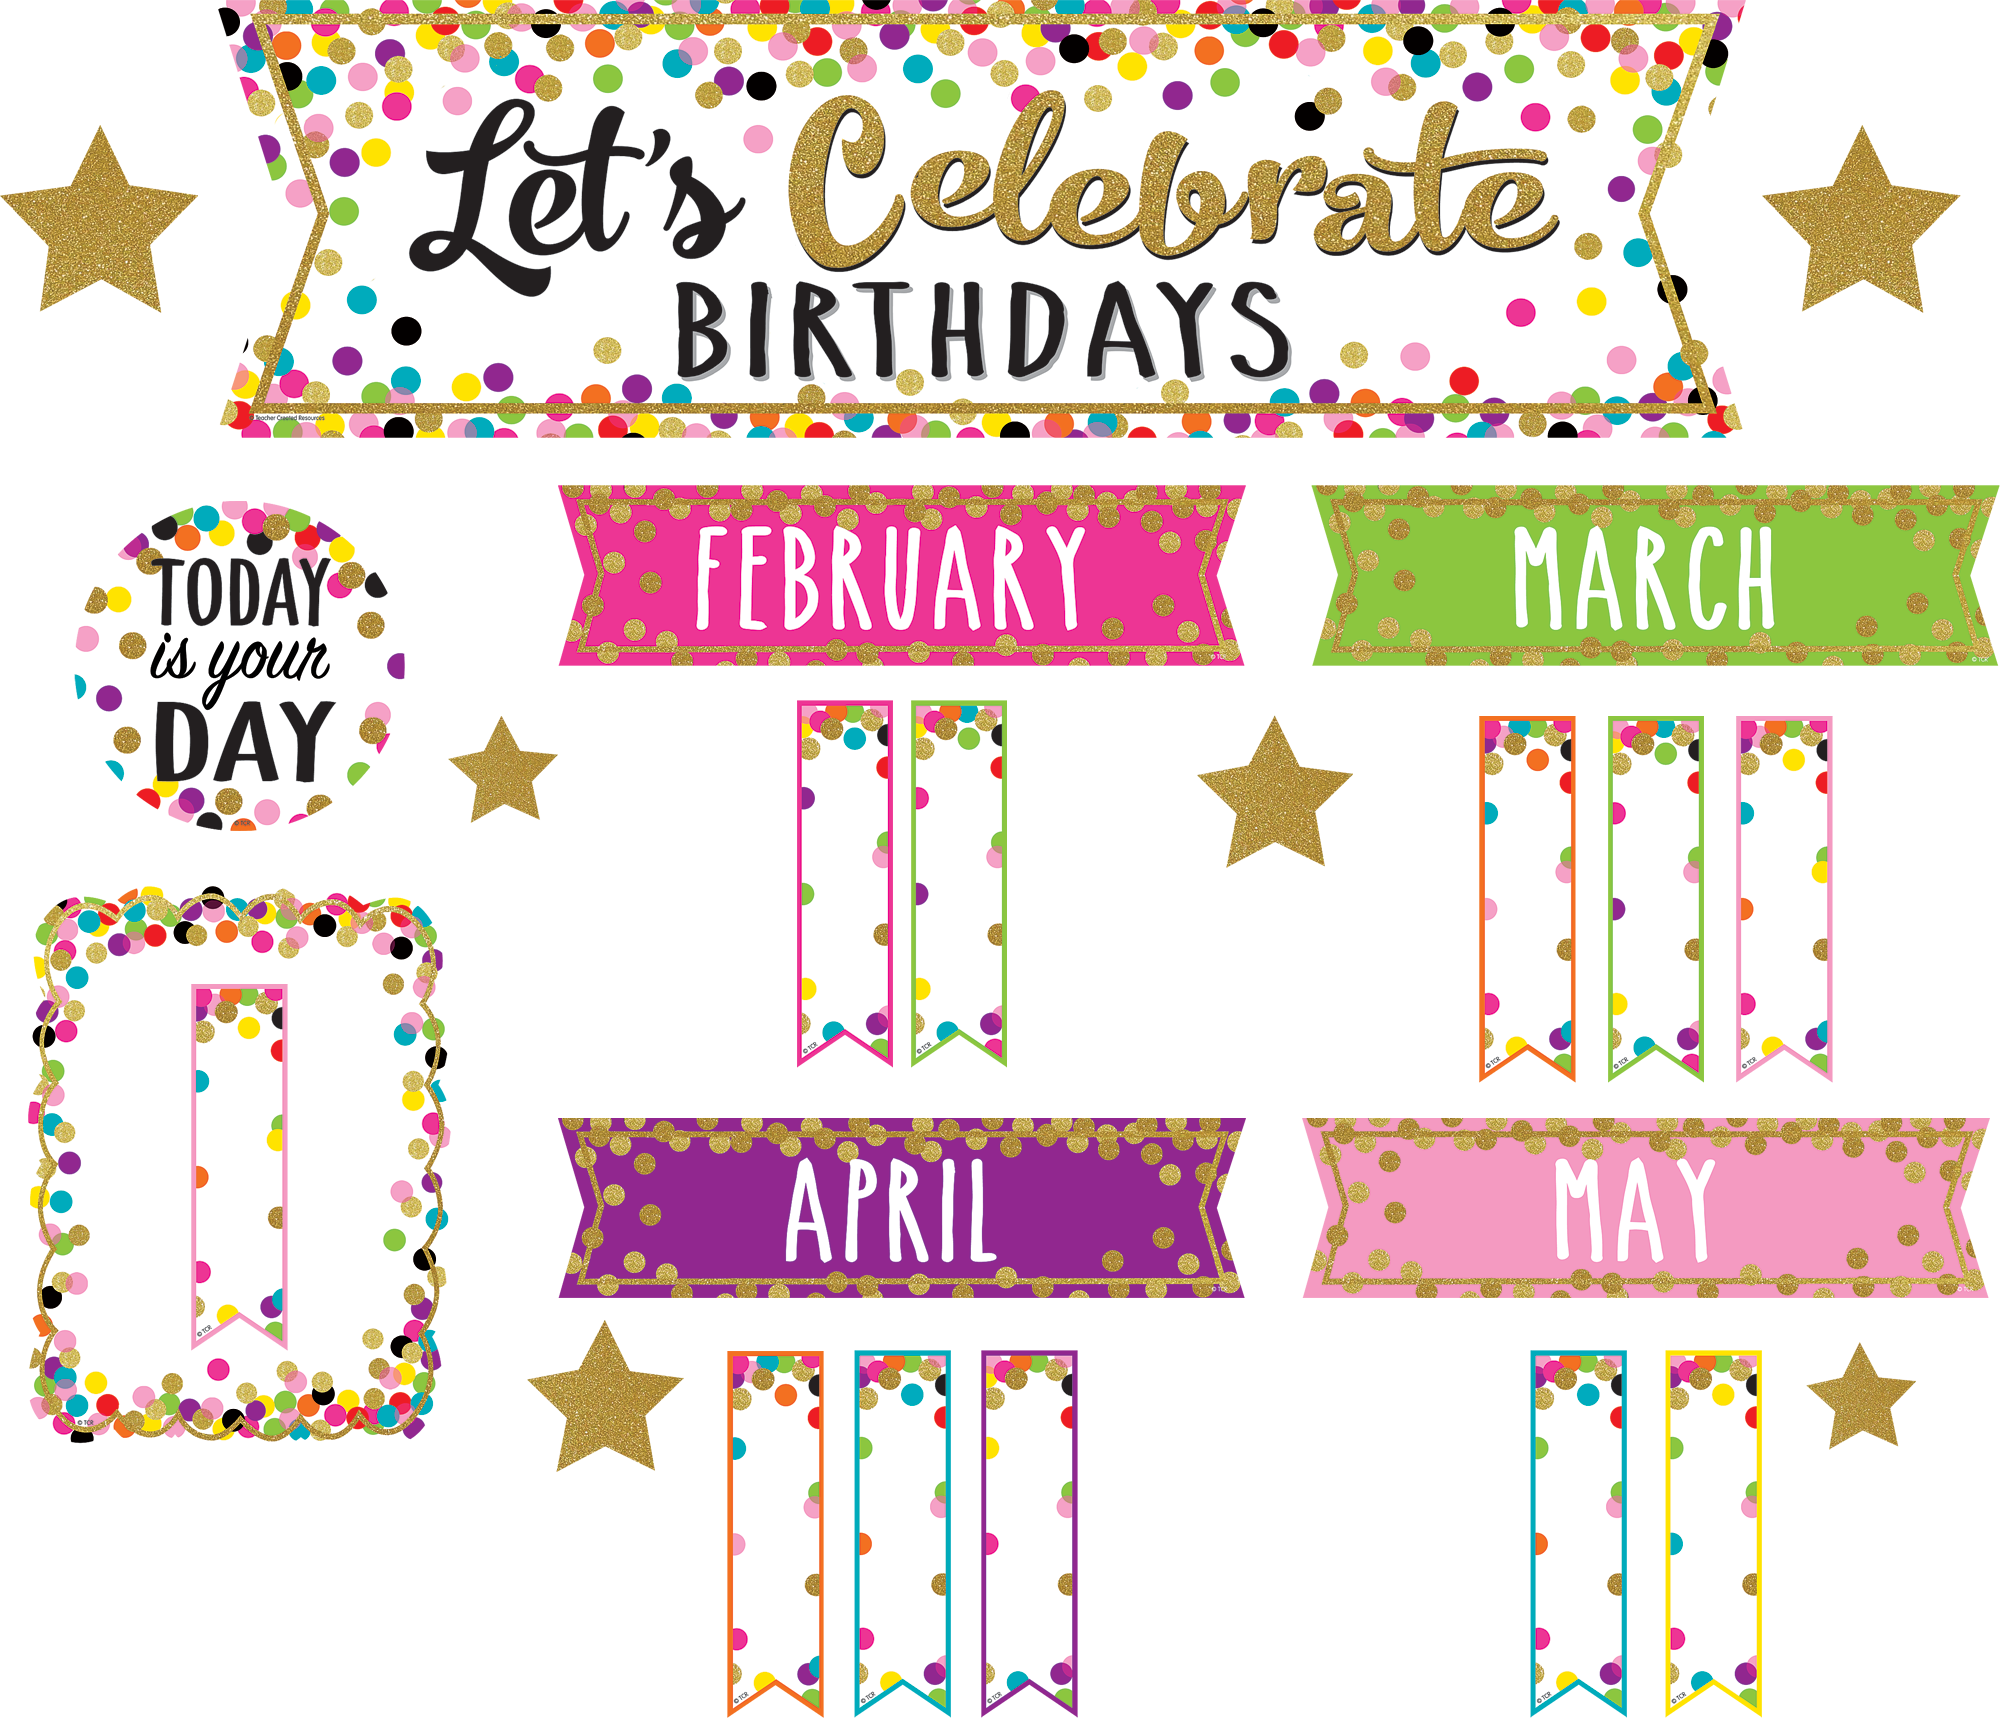 Confetti LetÍs Celebrate Birthdays Mini Bulletin Board